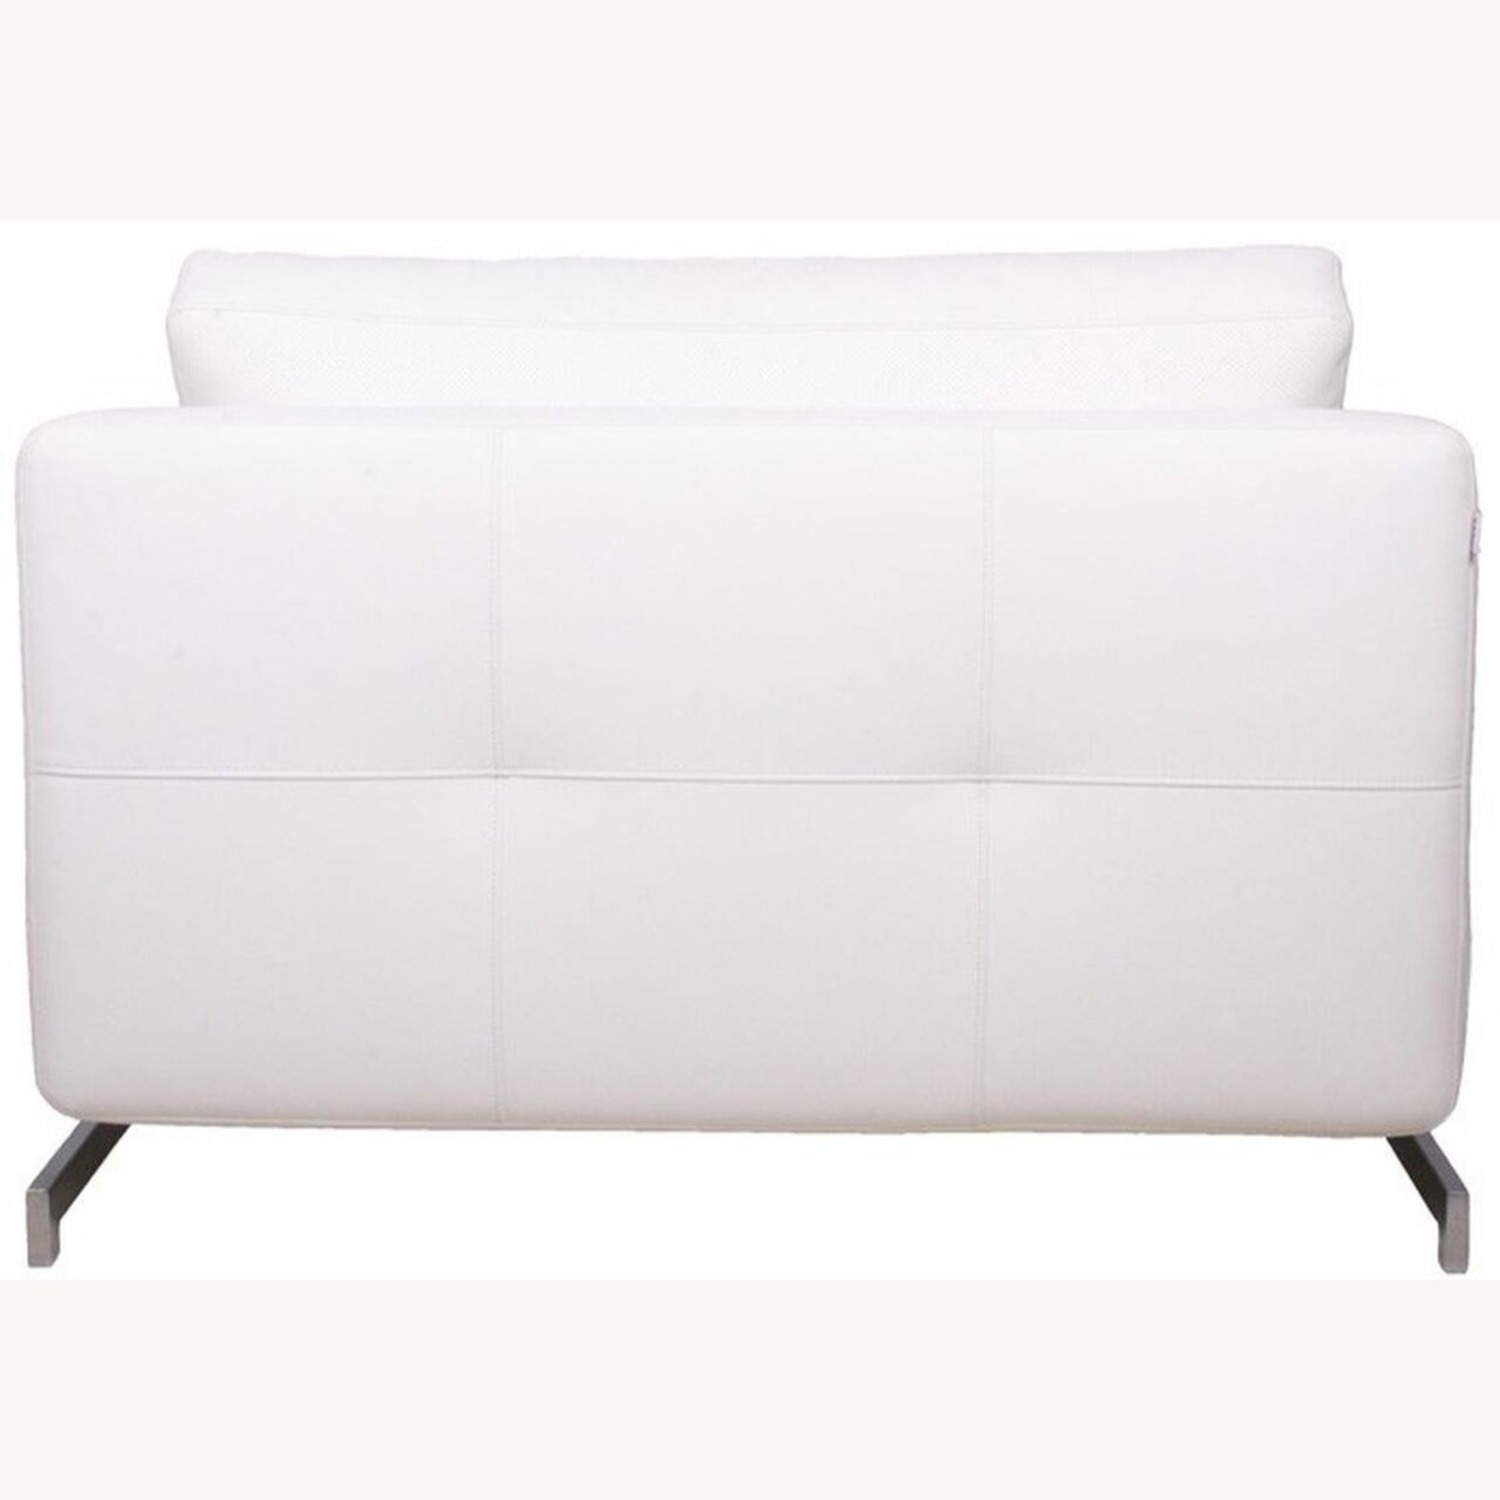 Sofa Bed In White Plush Upholstery W/ Steel Frame - image-2